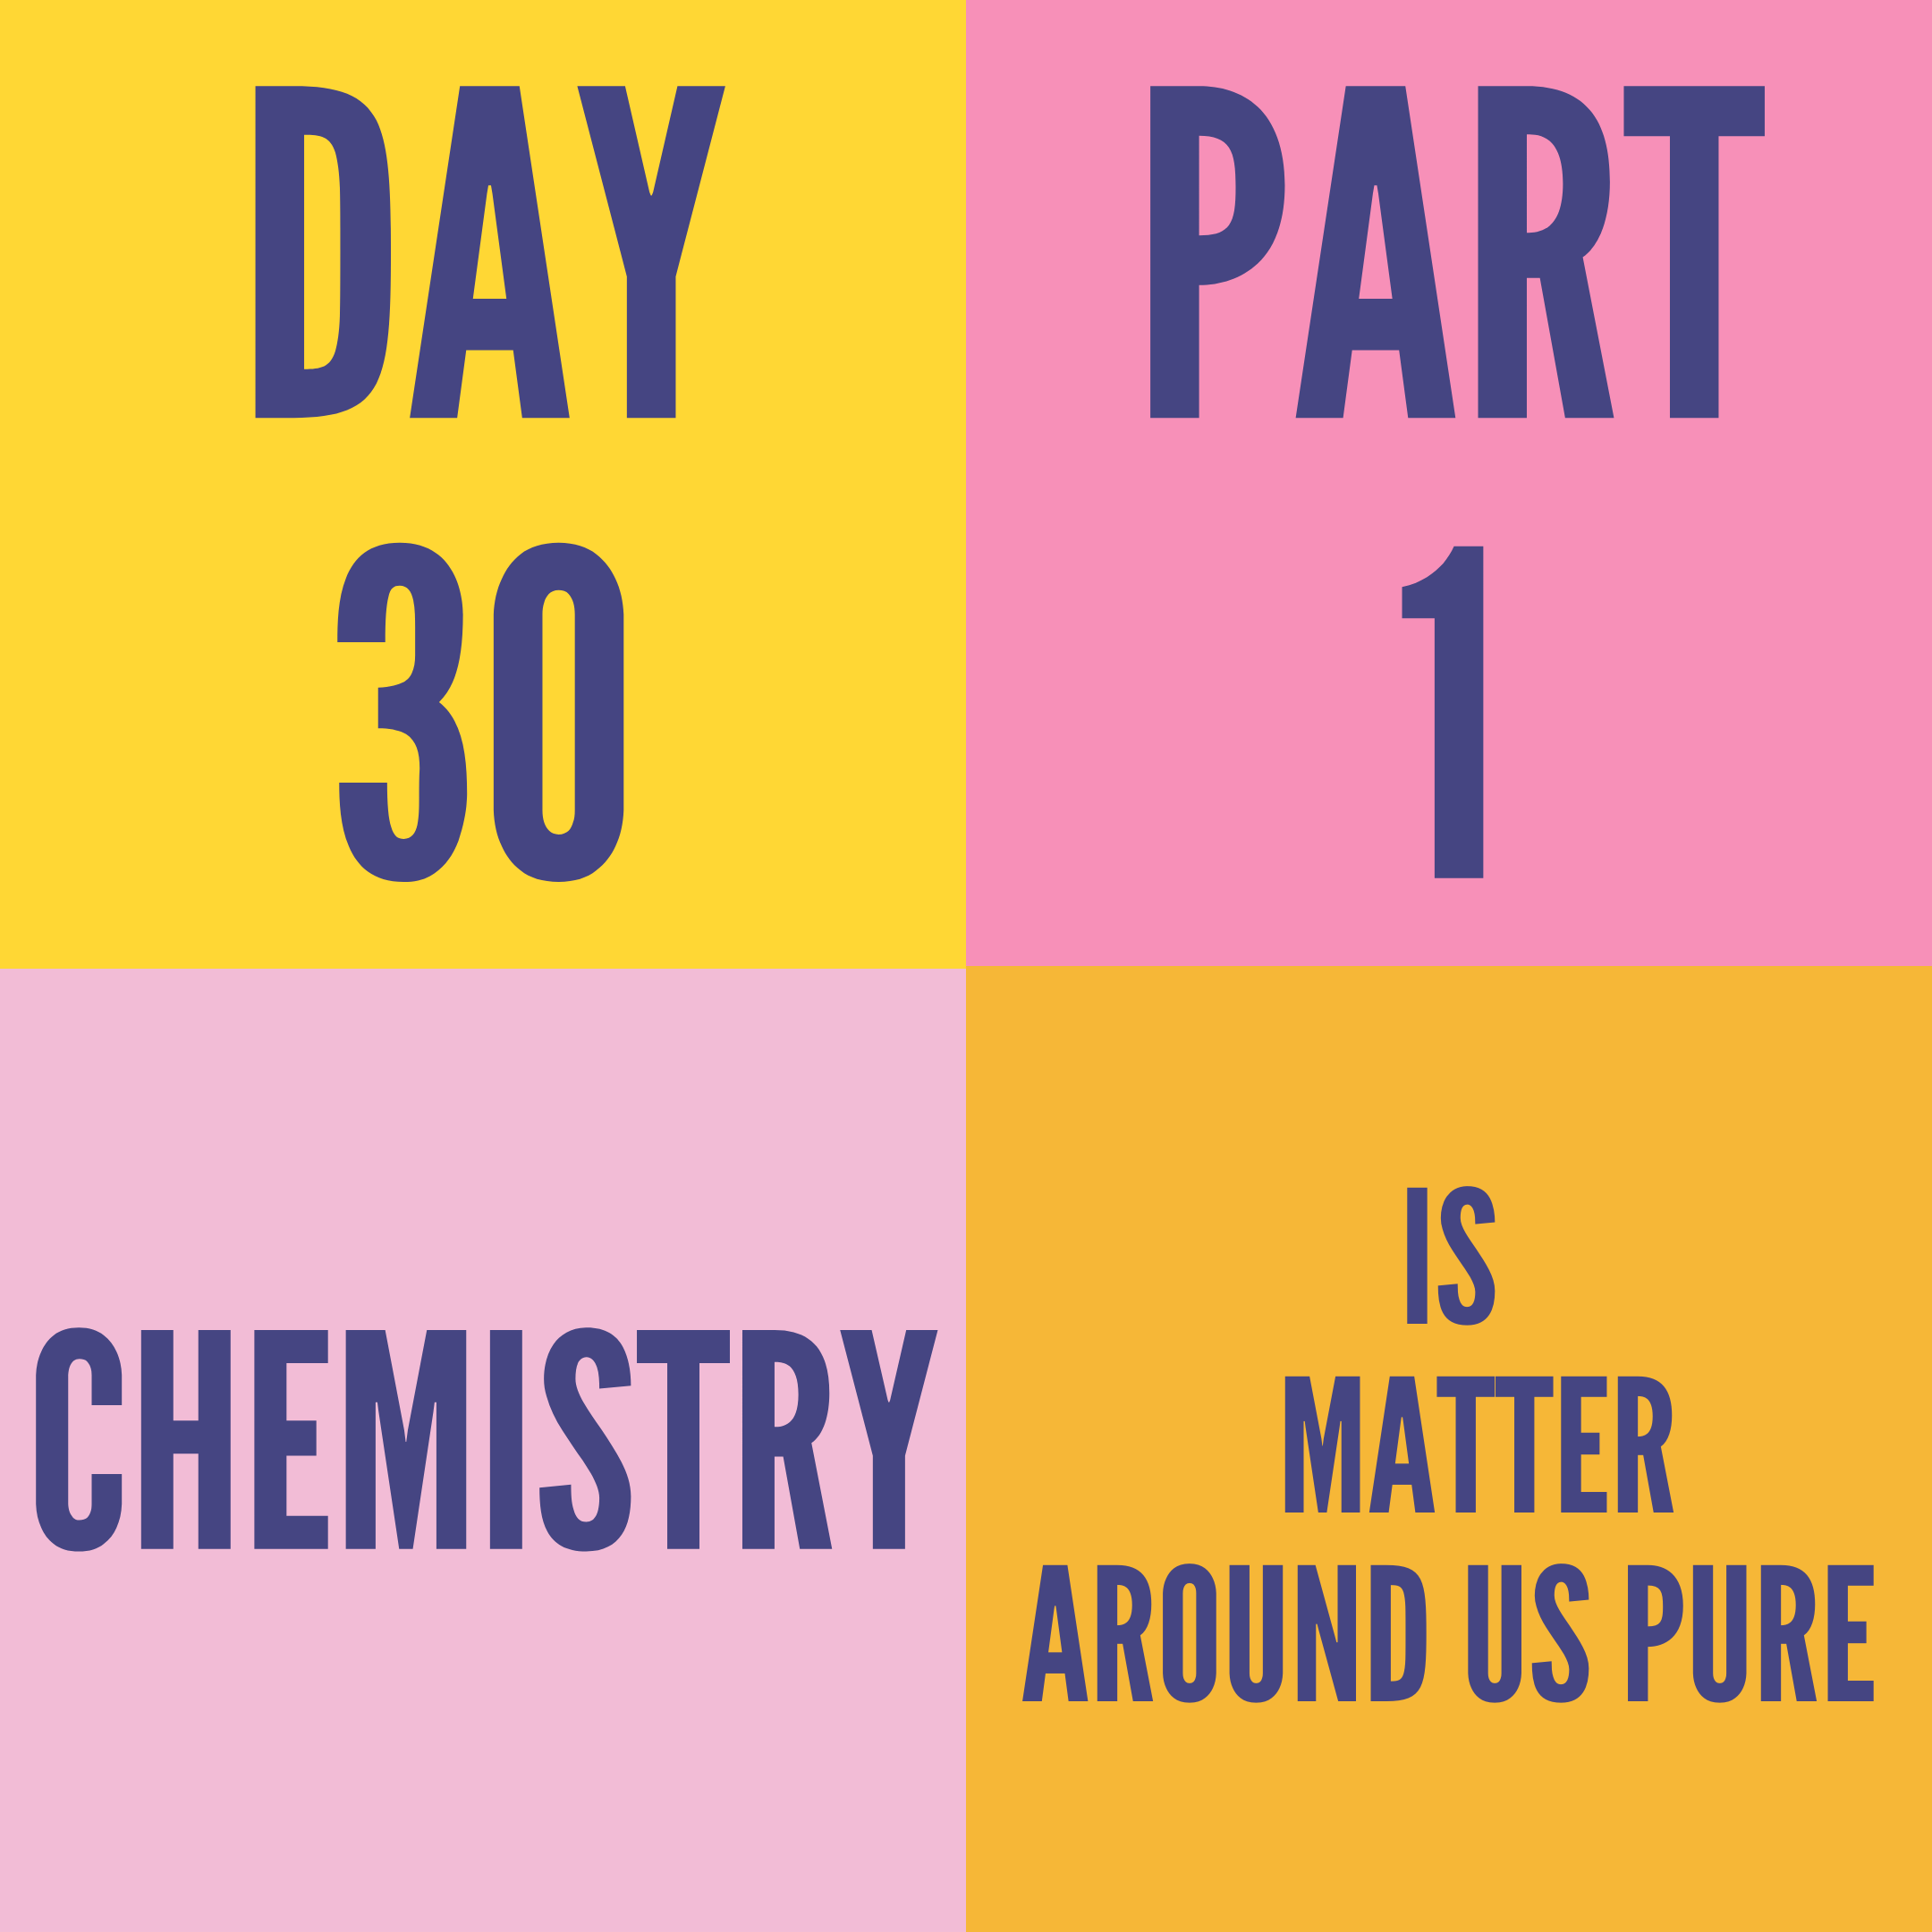 DAY-31 PART-1 IS MATTER AROUND US PURE